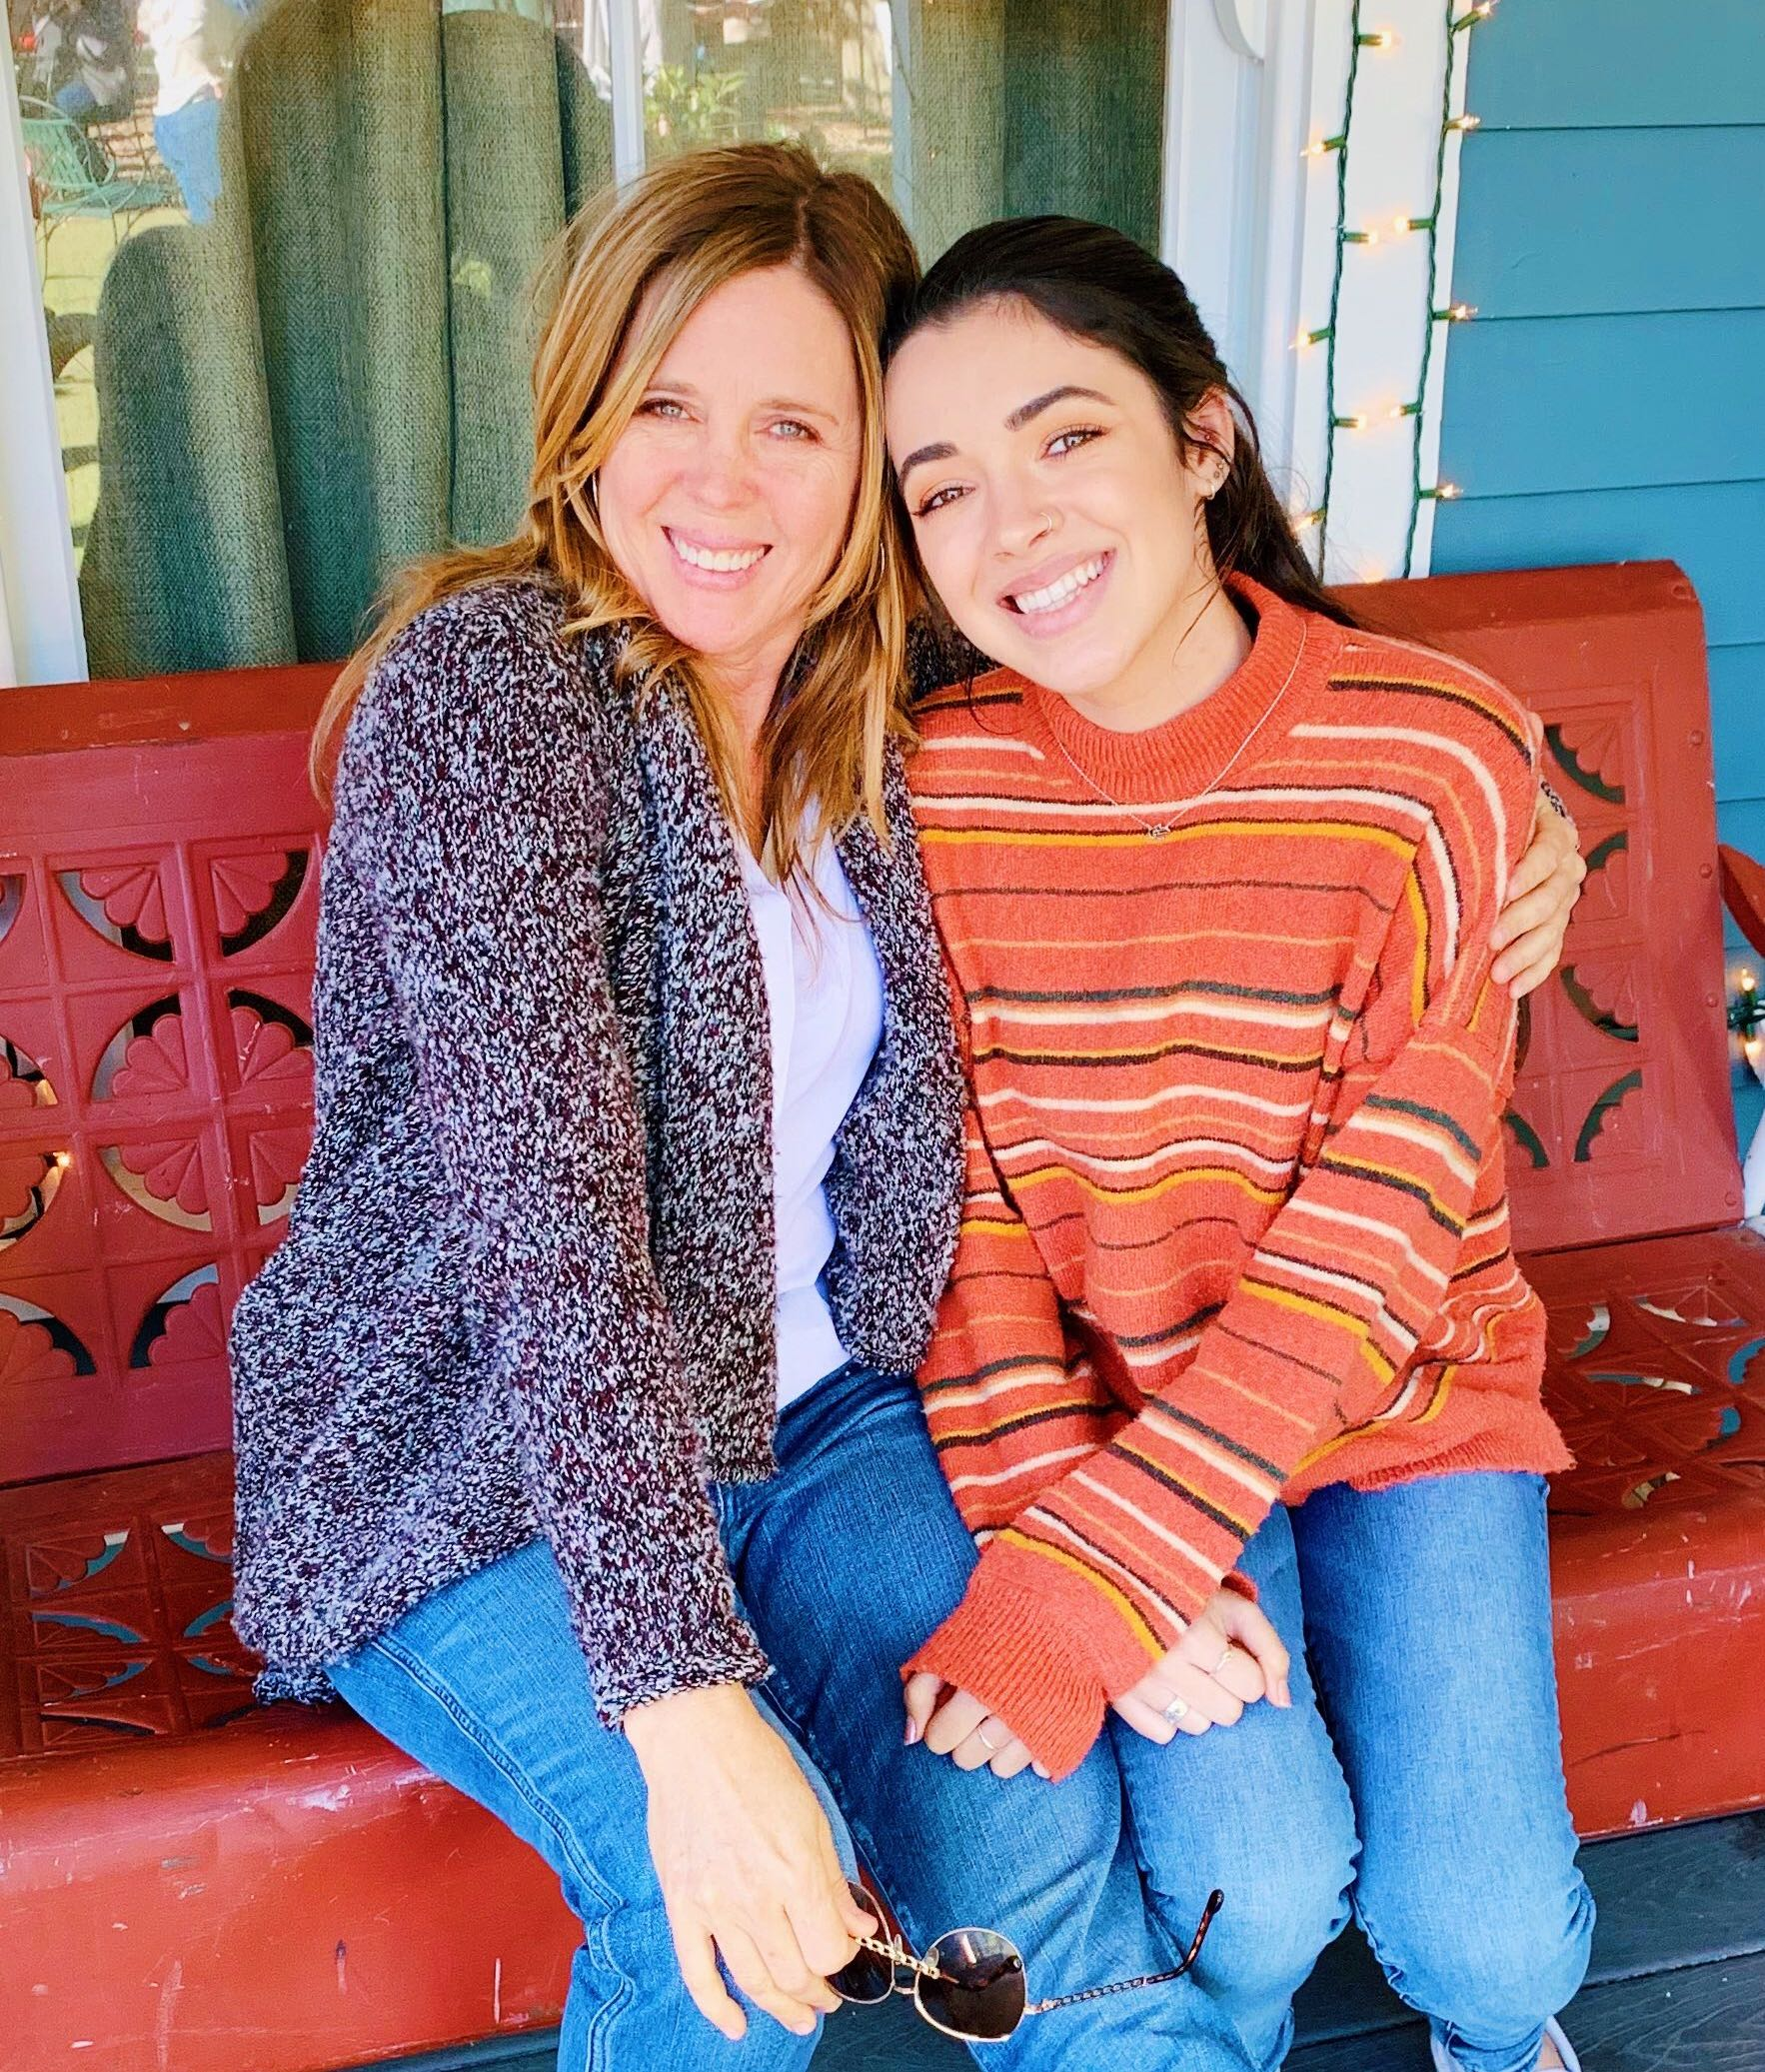 Wendy & her daughter at warner bros studios last week before dropping her DAUGHTER off to fly back to college